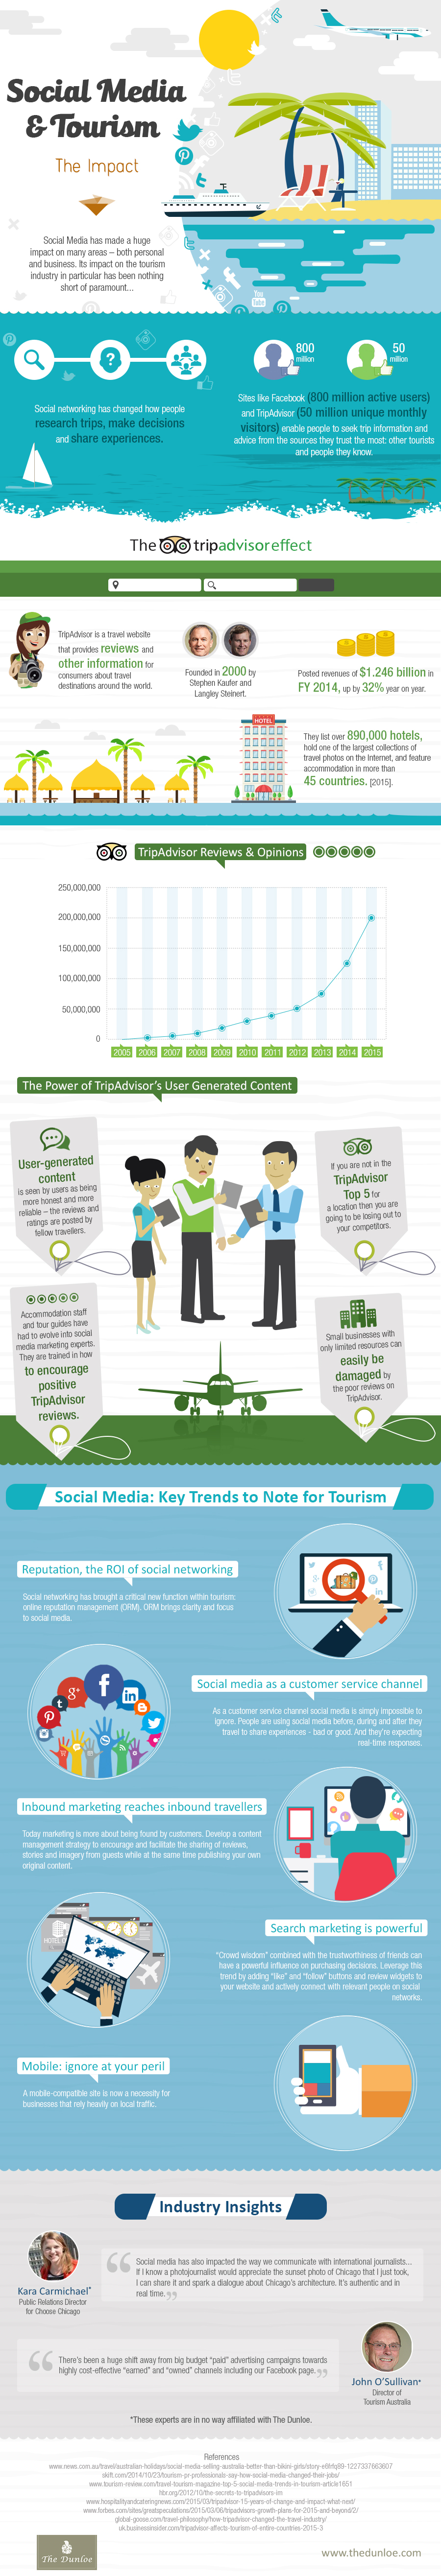 impact of social media on the tourism industry the impact of social media on the tourism industry